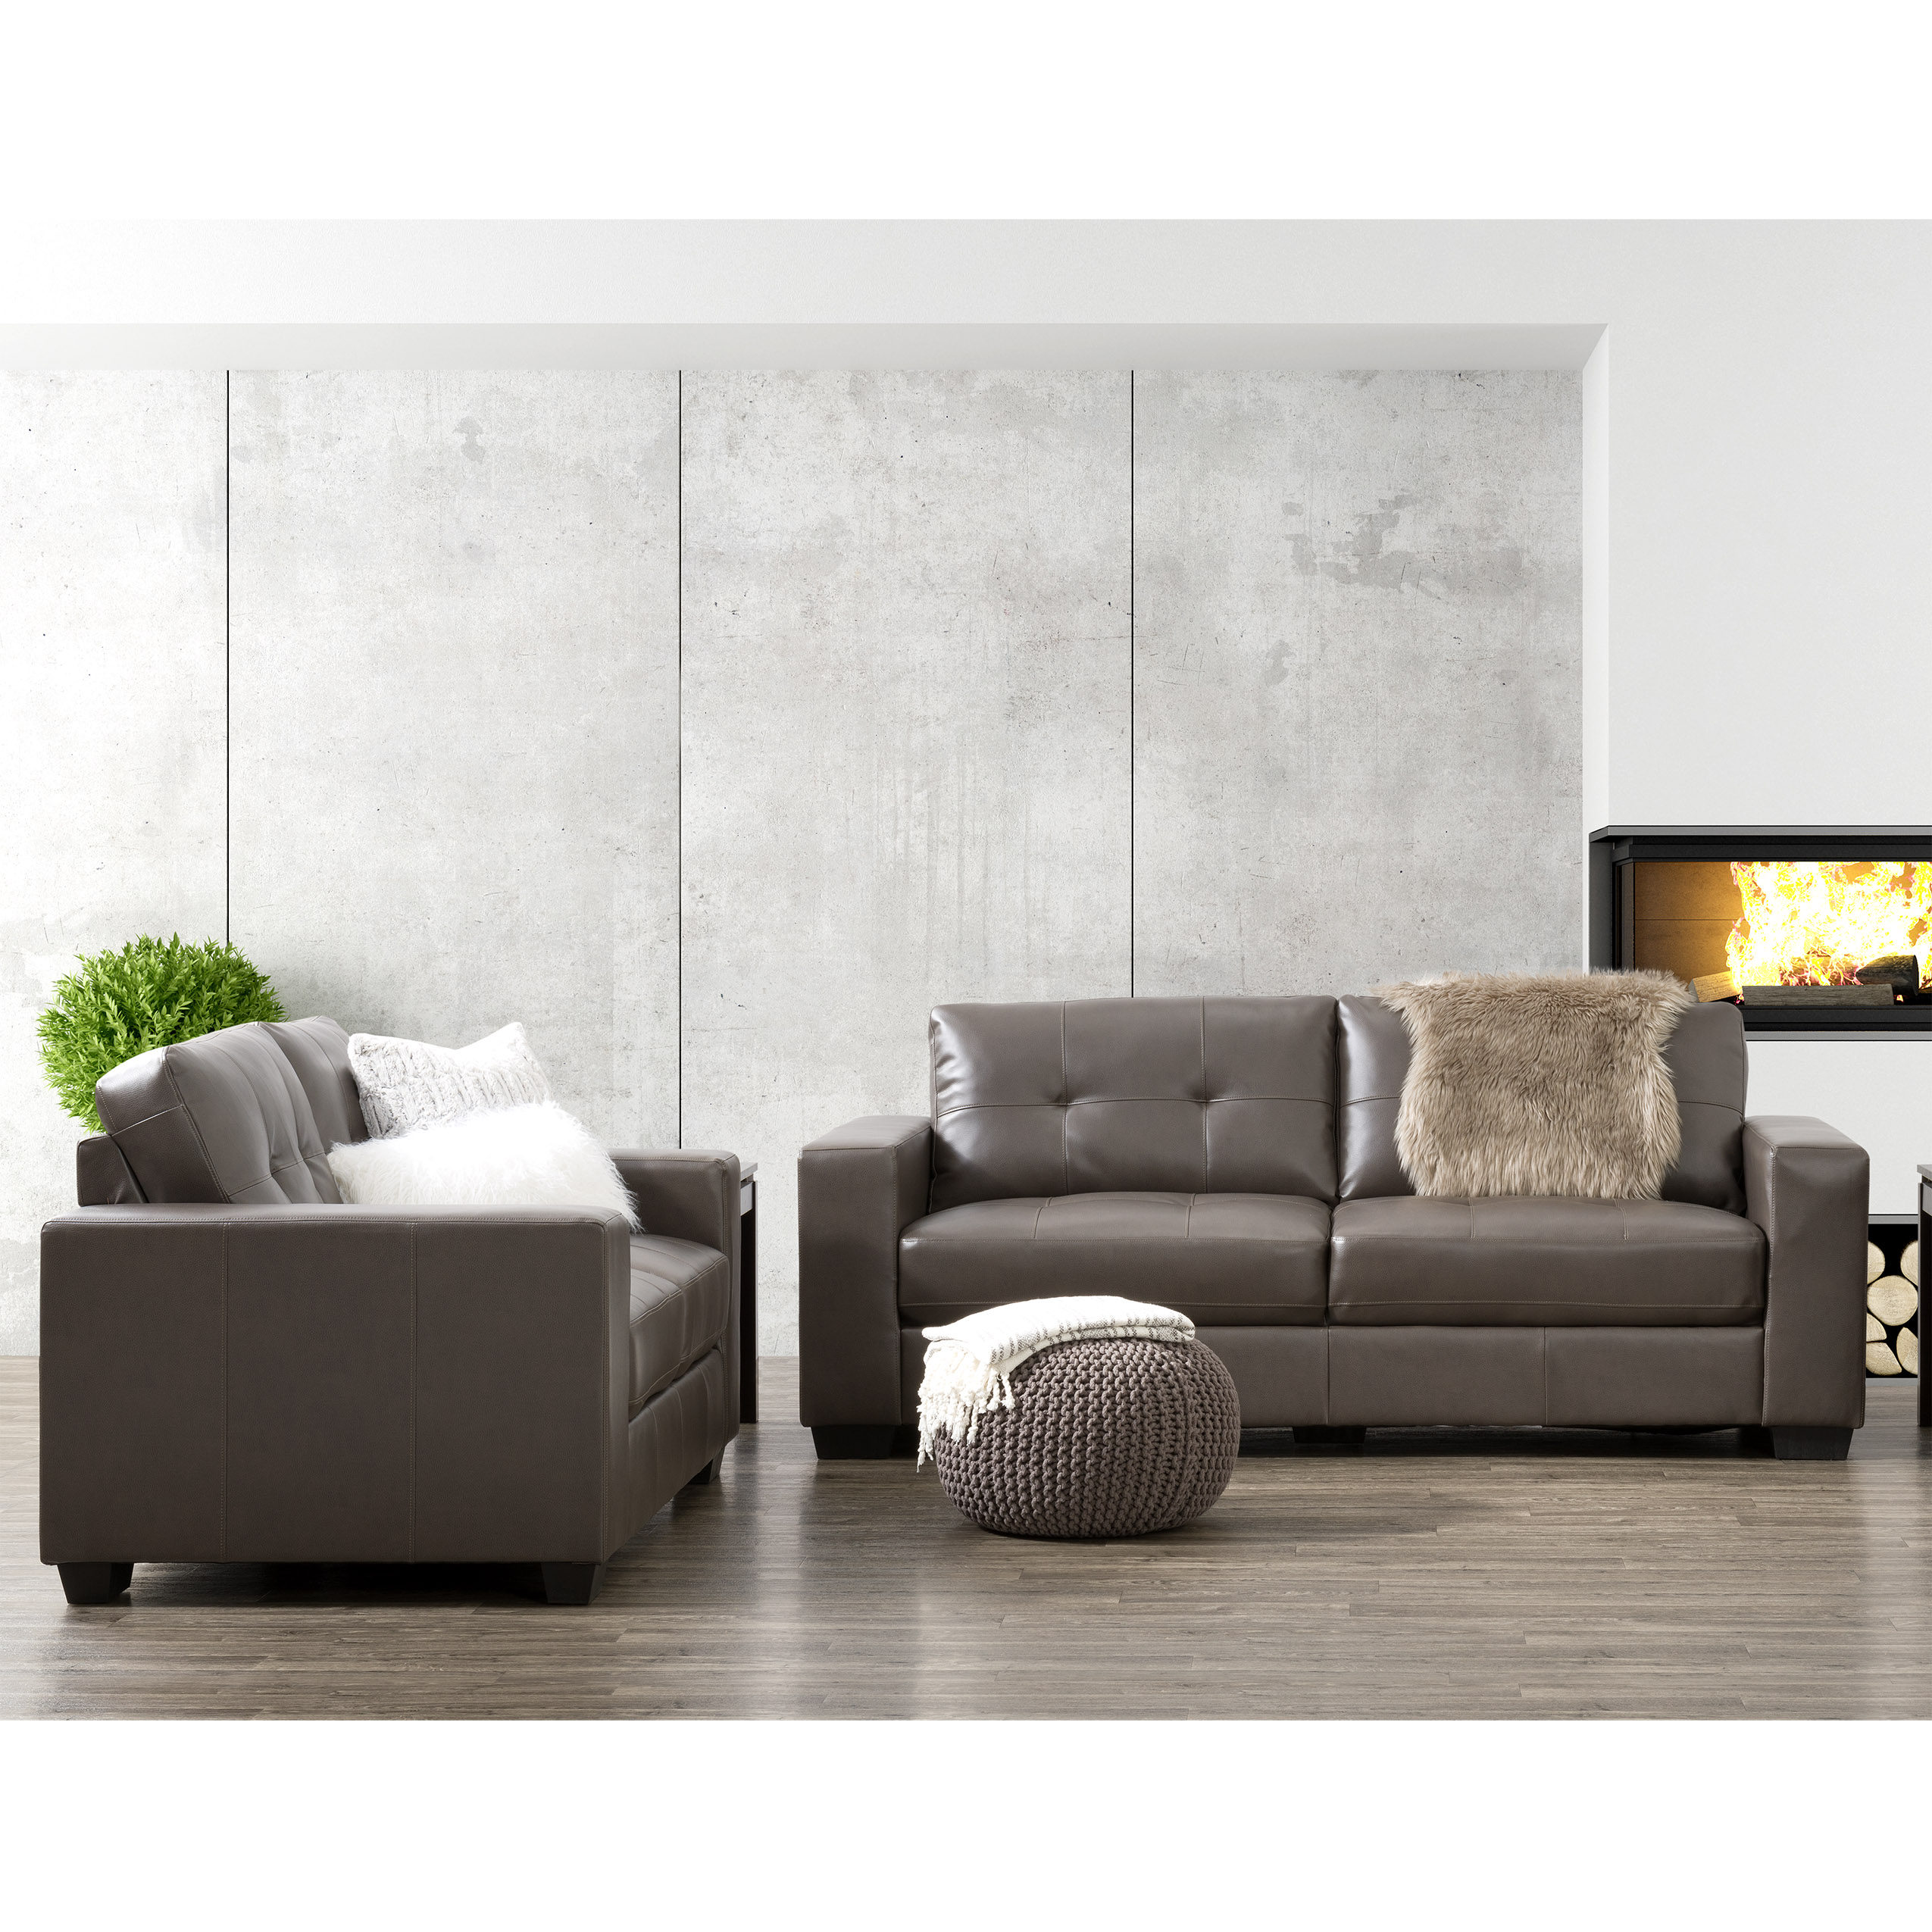 CorLiving 2Pc Tufted Seat and Backrest Bonded Leather Sofa Set